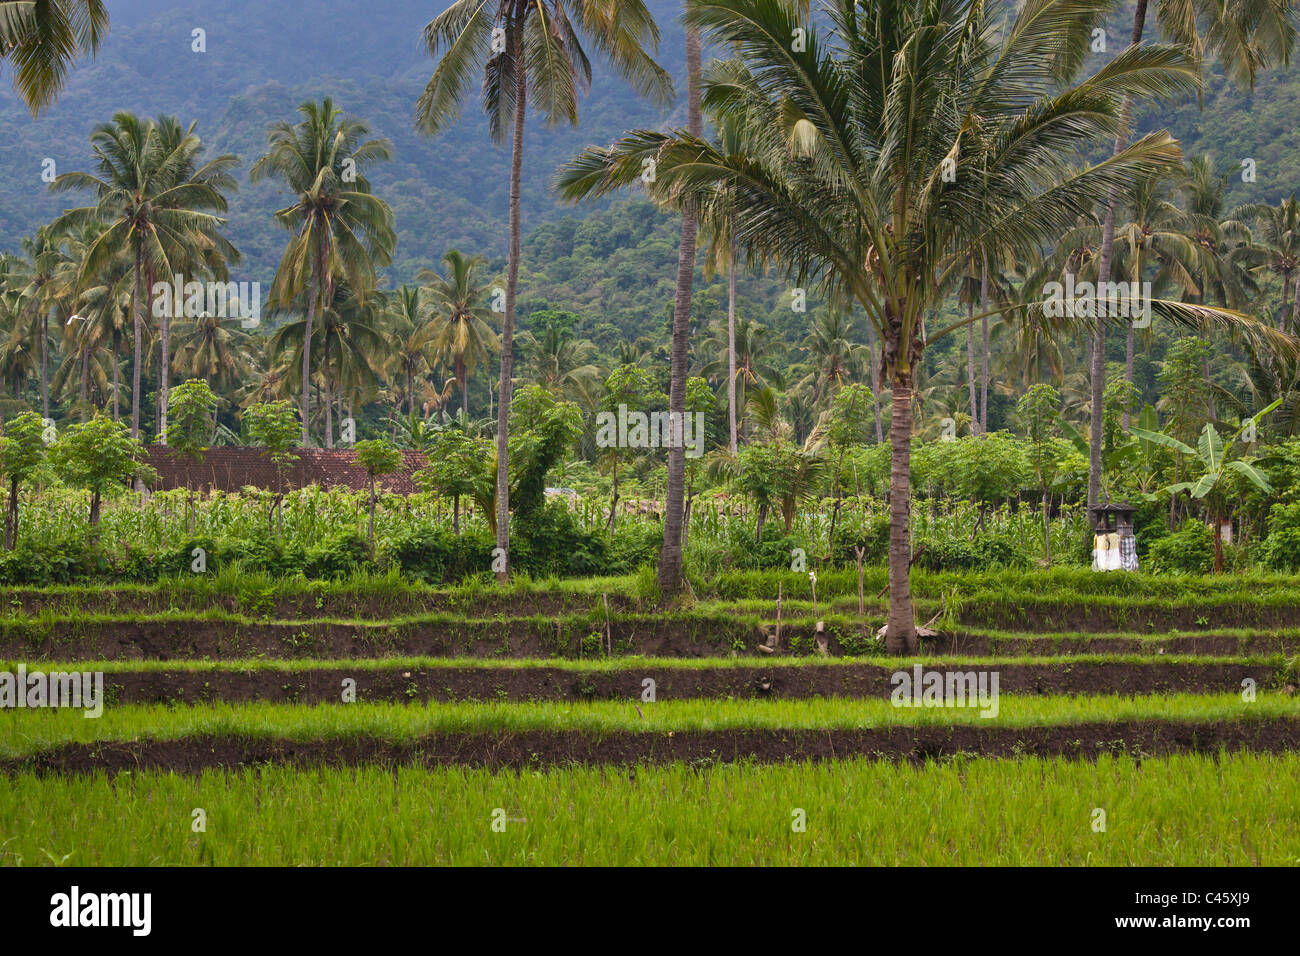 CASSAVA (Manihot esculenta), RICE, BANANAS and COCONUT TREES grow in a rich agriculture valley near PEMUTERAN - - Stock Image